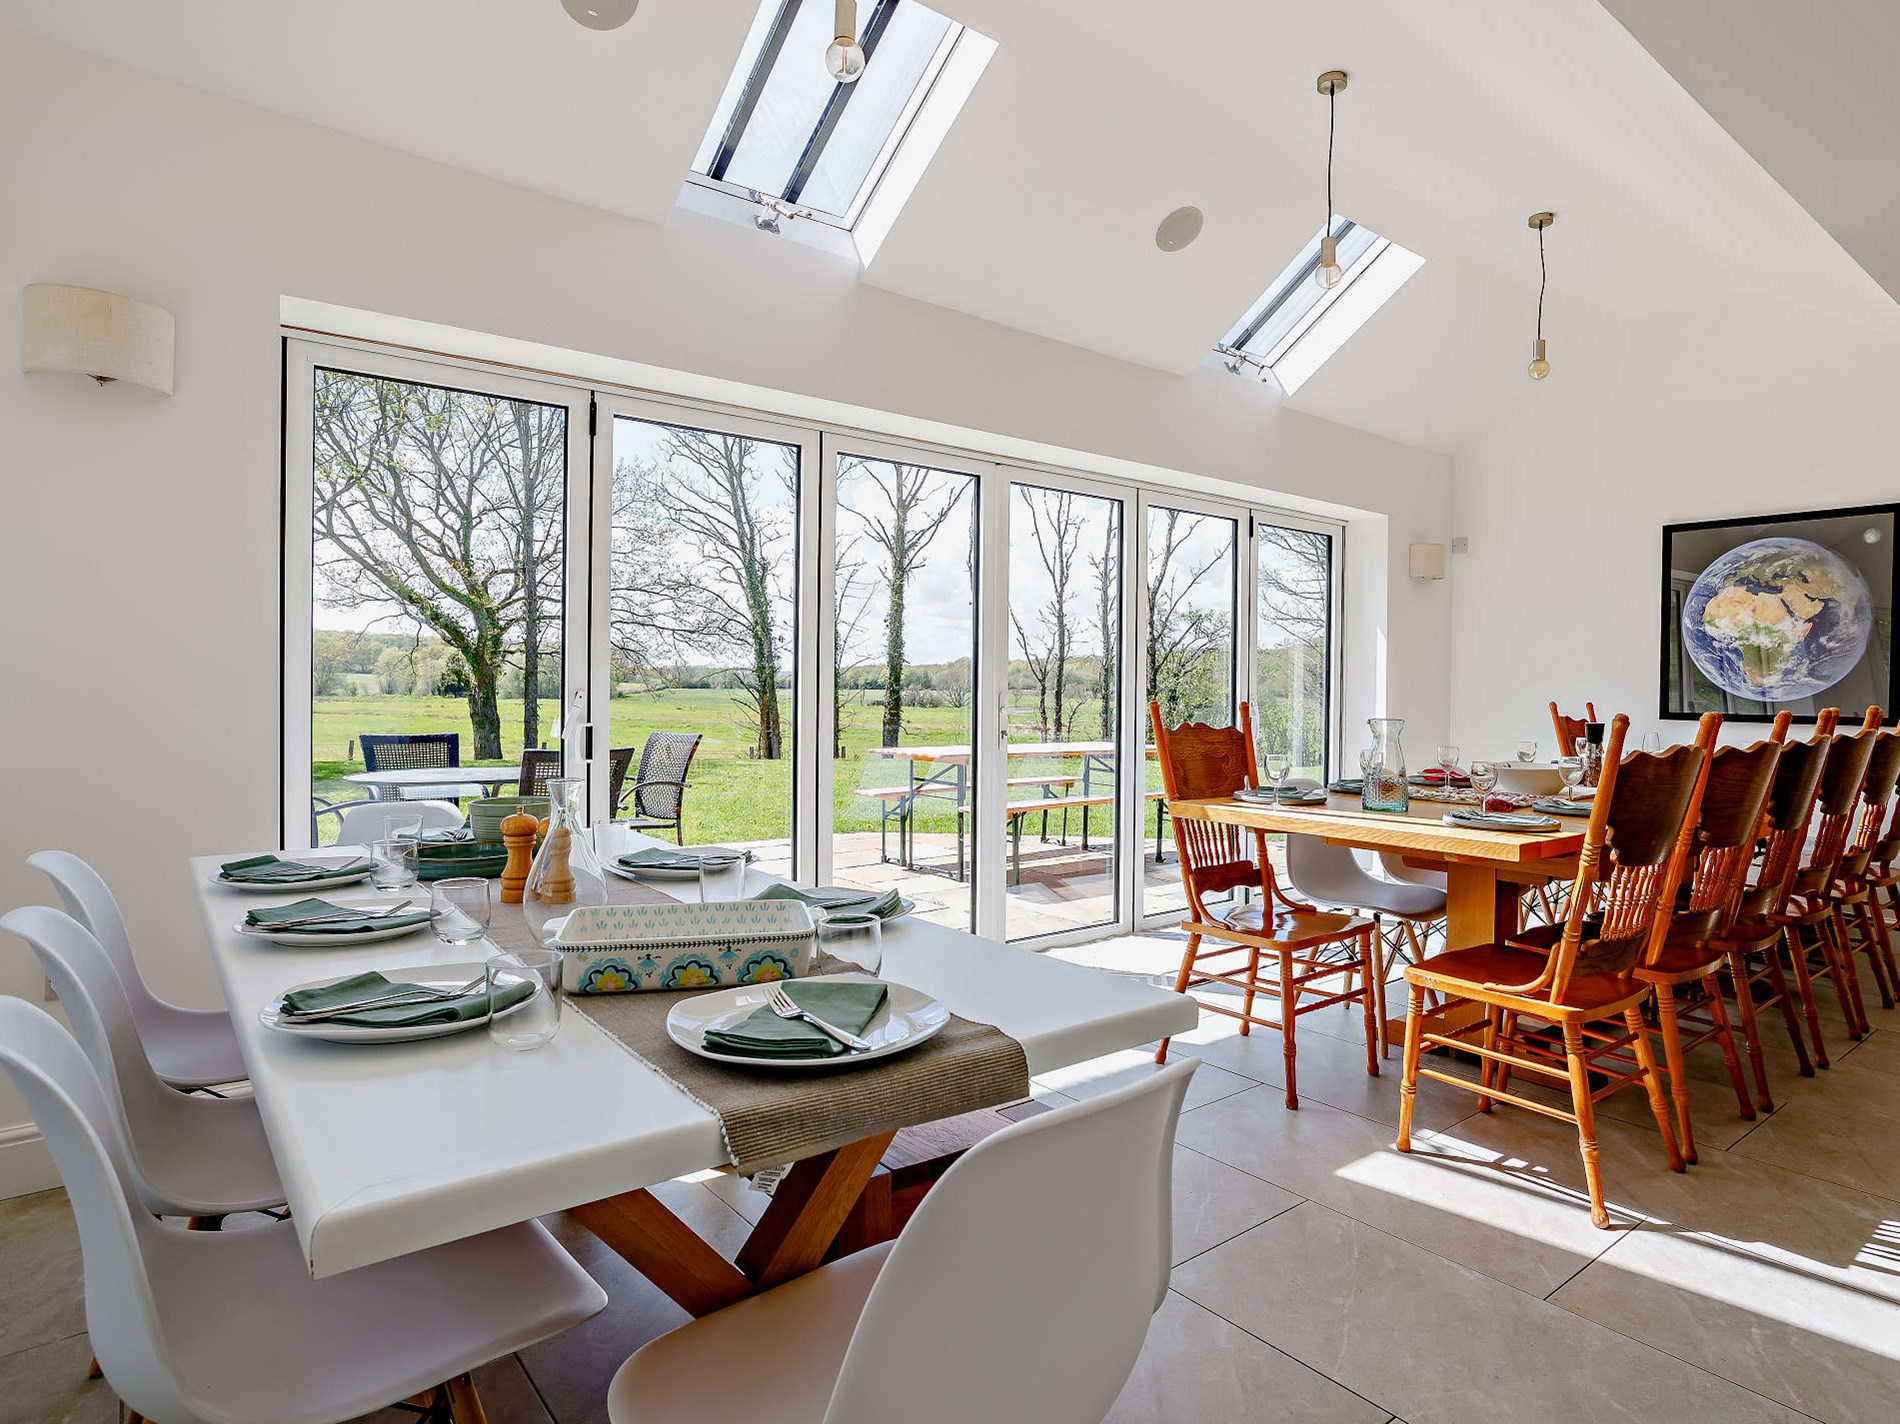 6 Bedroom Cottage in Sussex, South of England